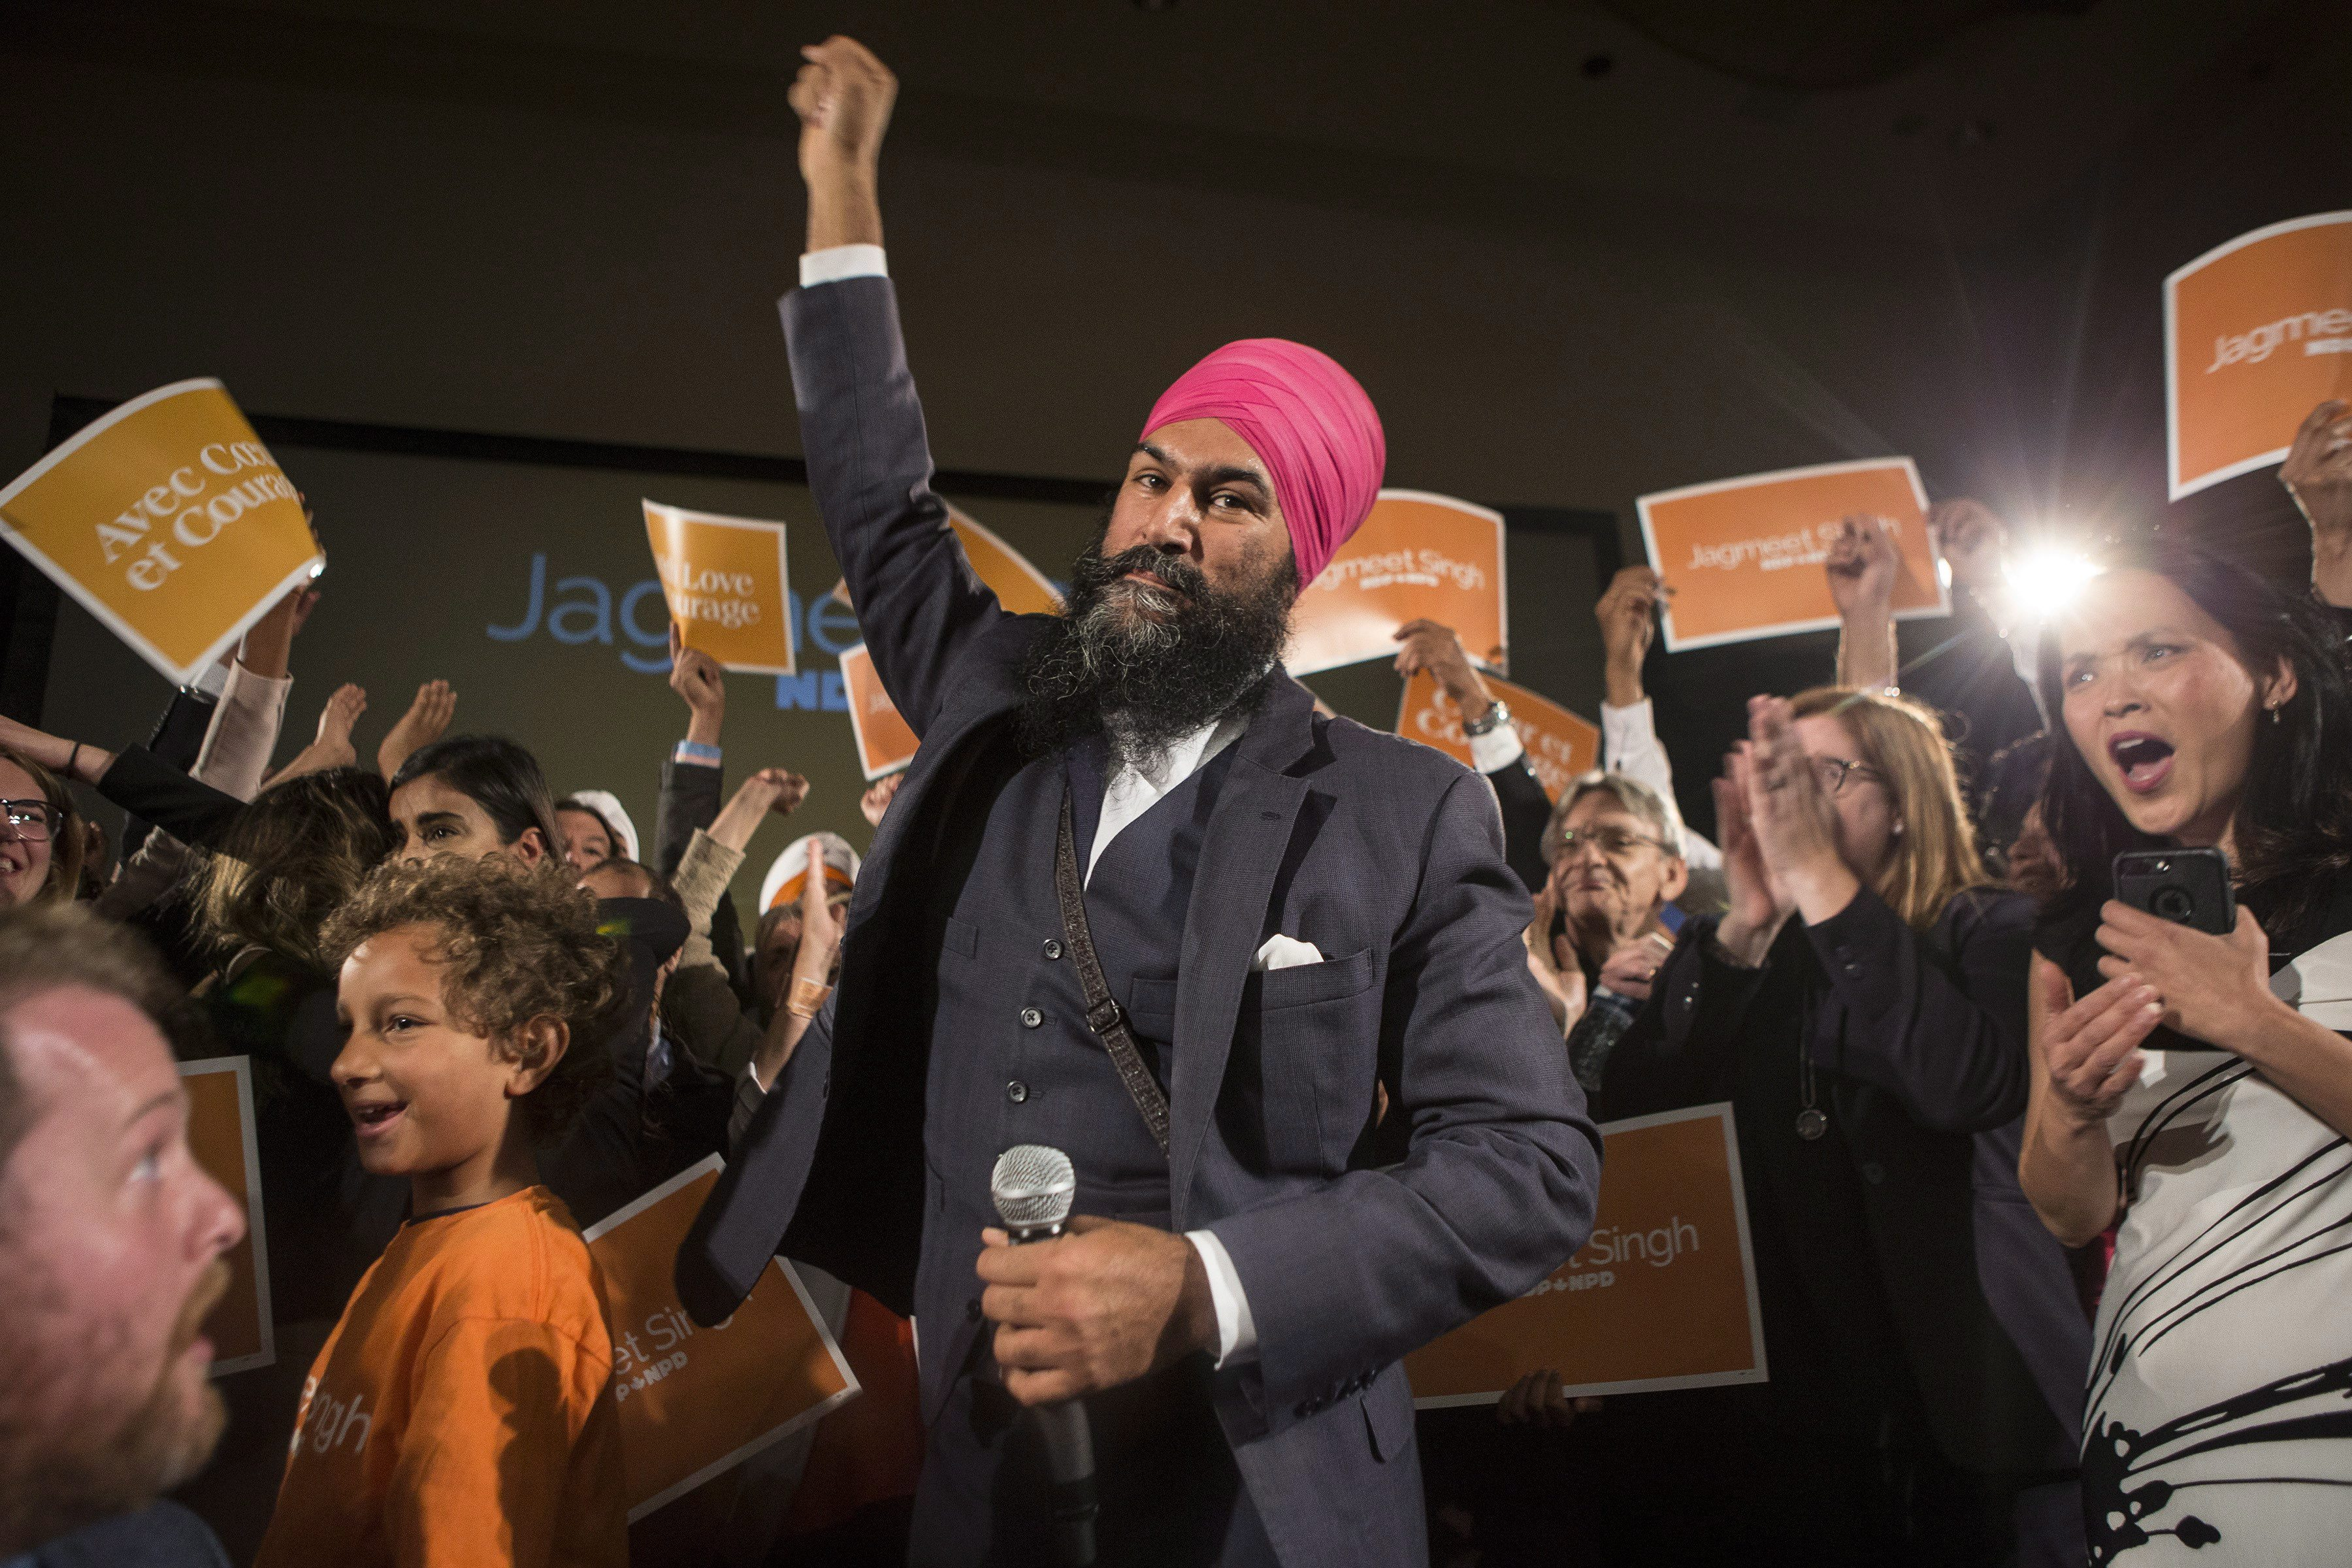 WSO (Canada) Congratulate Jagmeet Singh on Historic NDP Leadership Victory